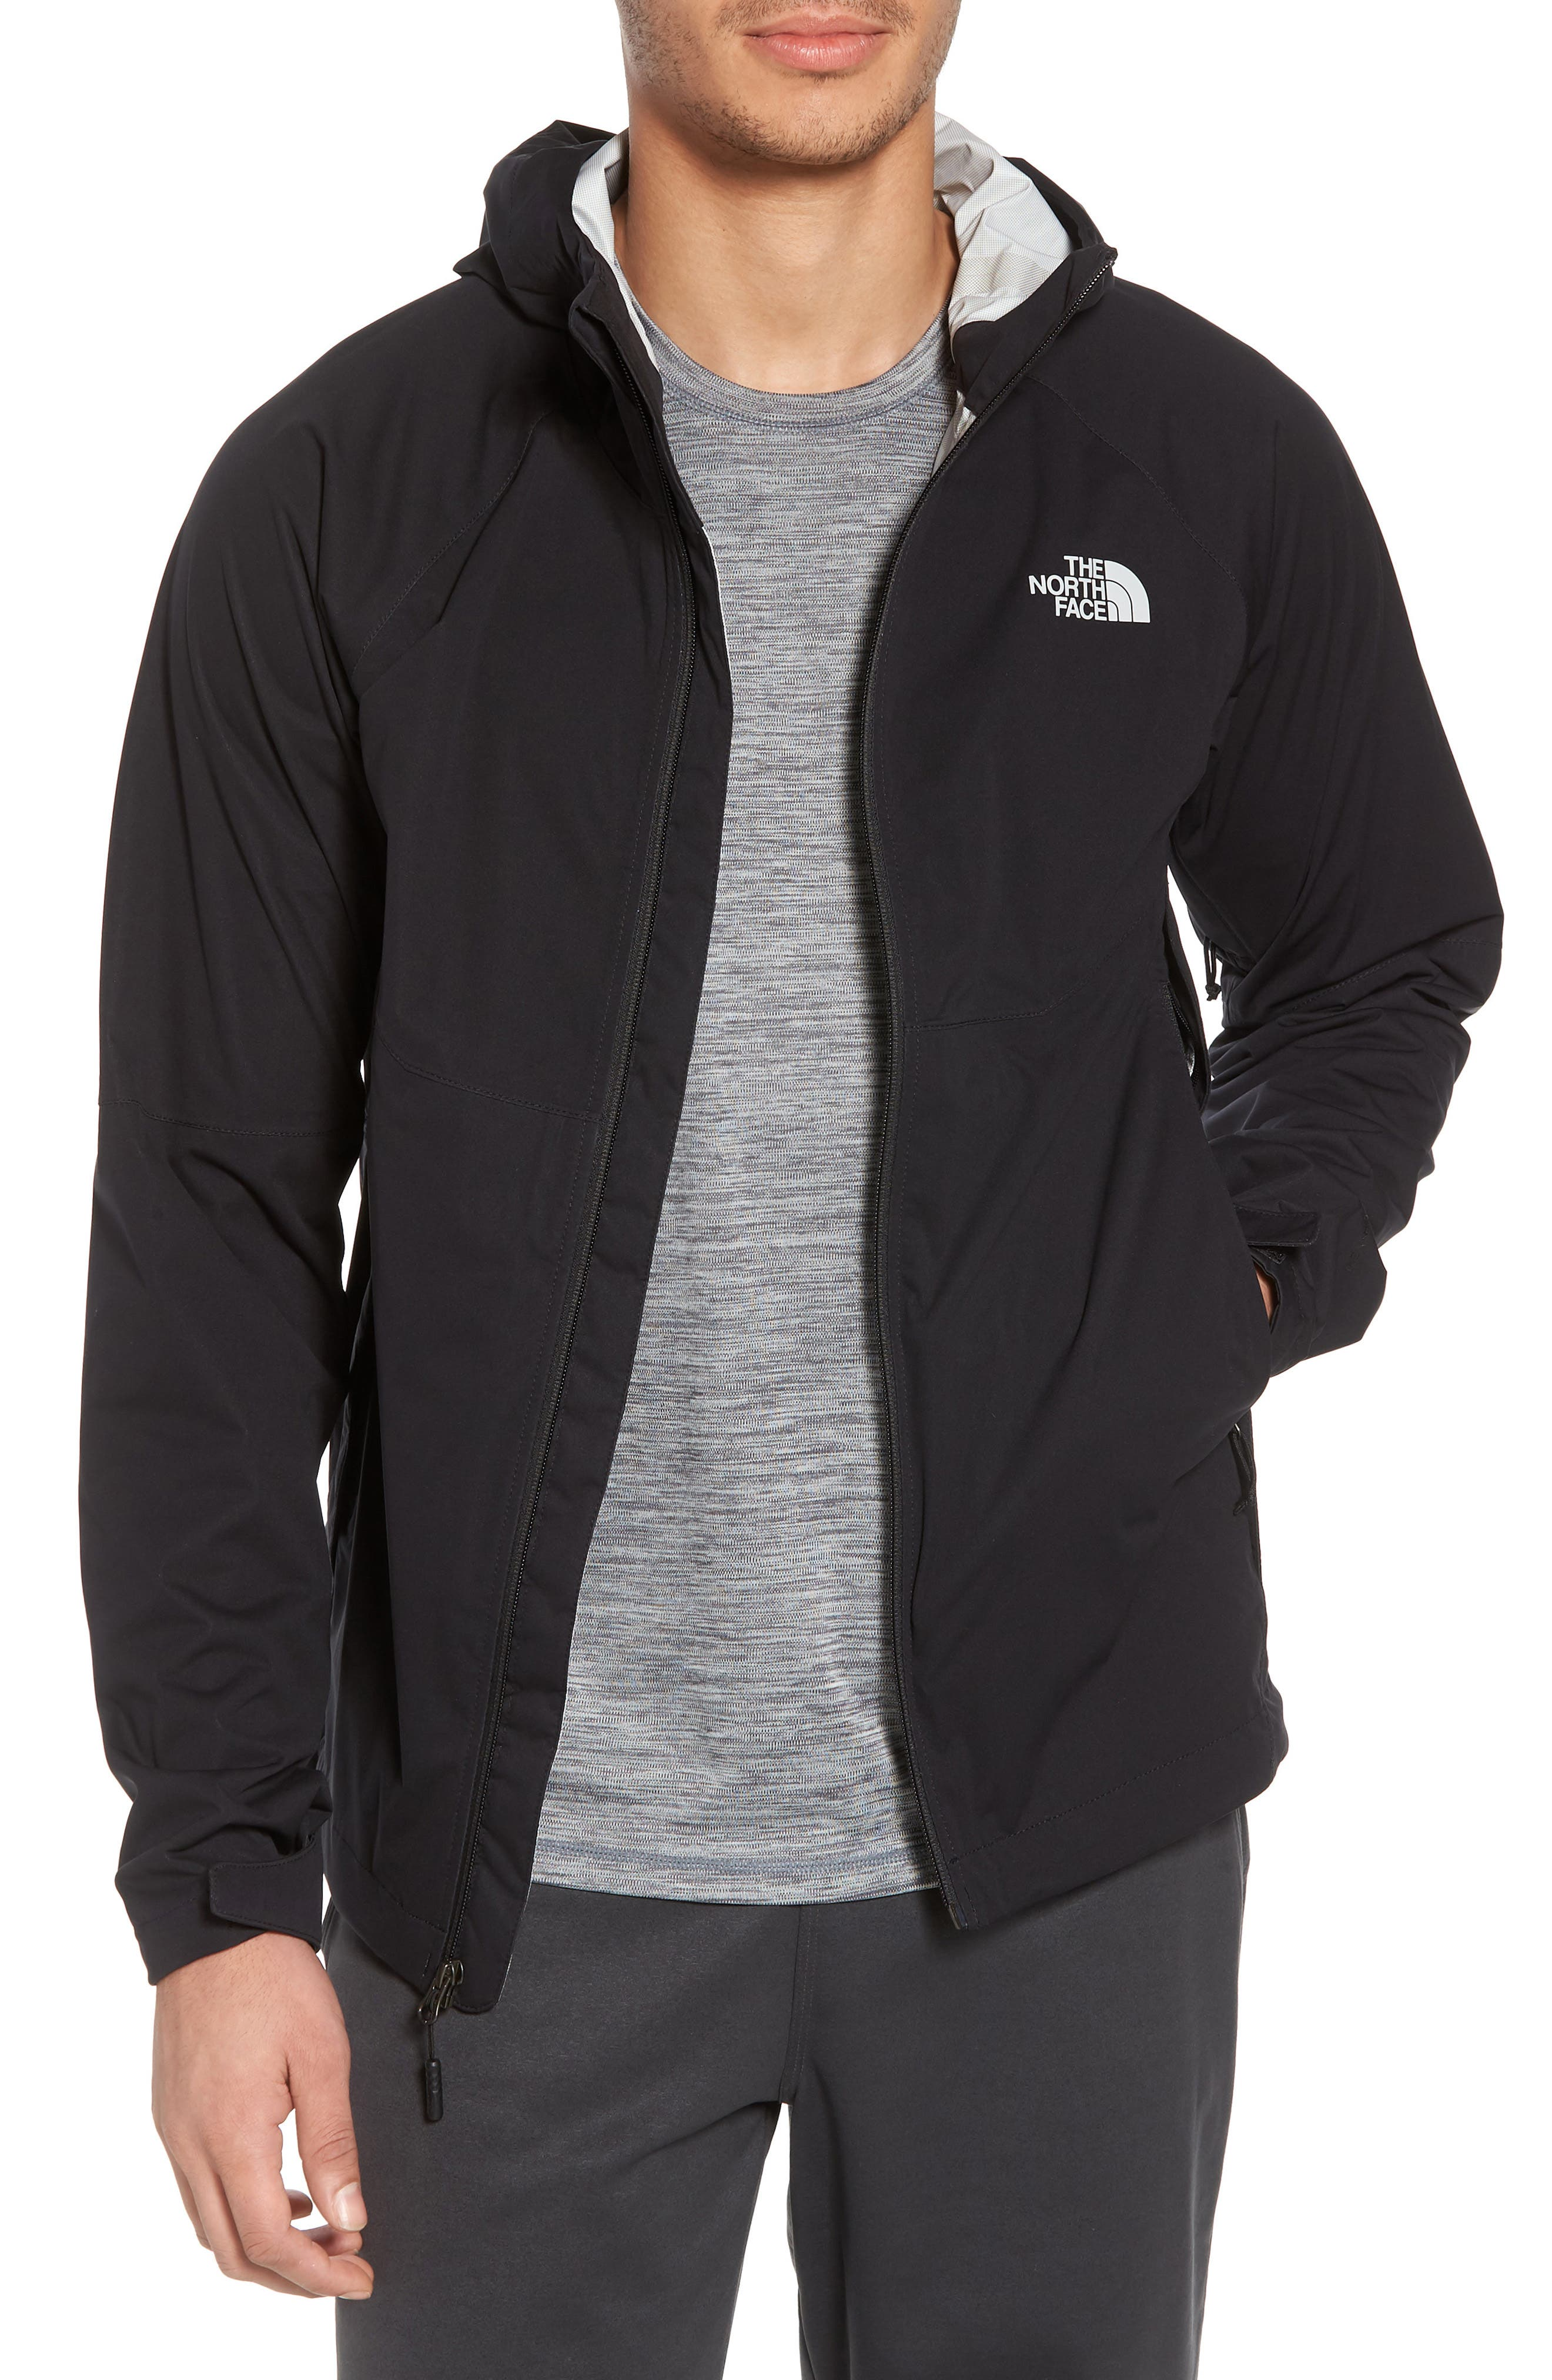 Allproof Stretch Hooded Rain Jacket,                             Main thumbnail 1, color,                             Tnf Black